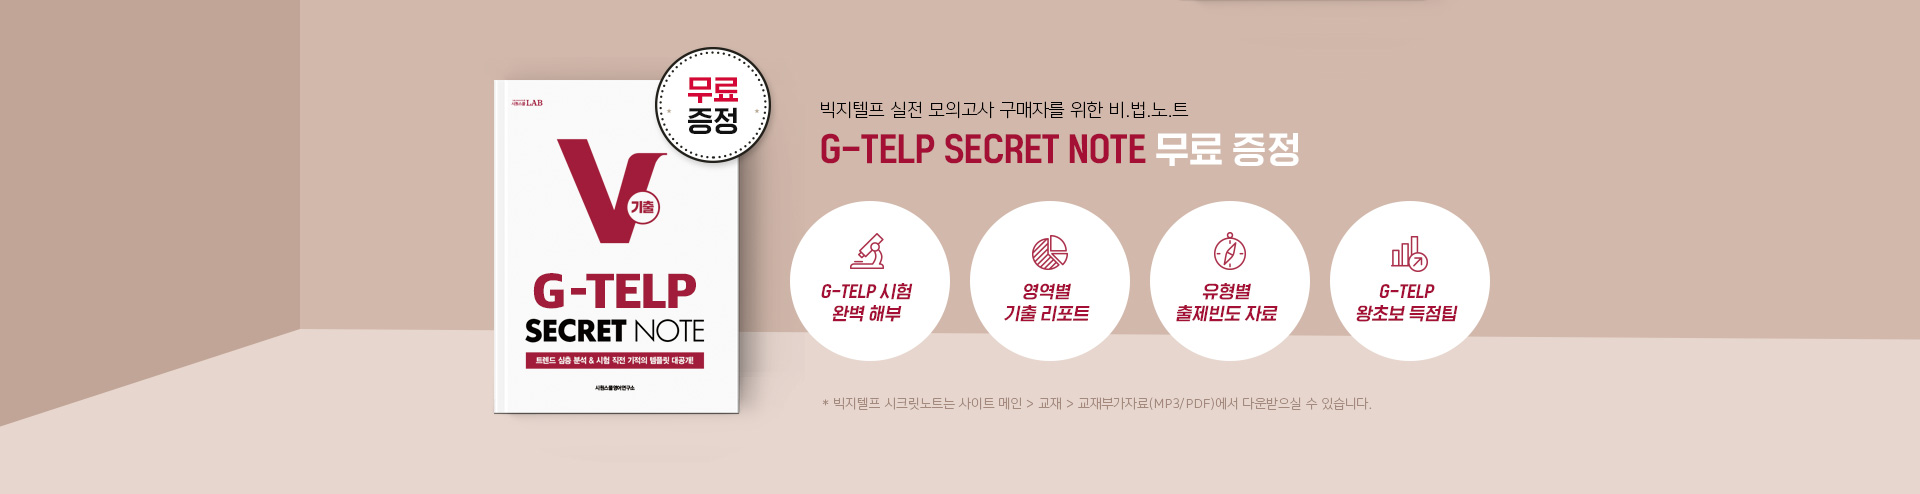 G-TELP SECRET NOTE